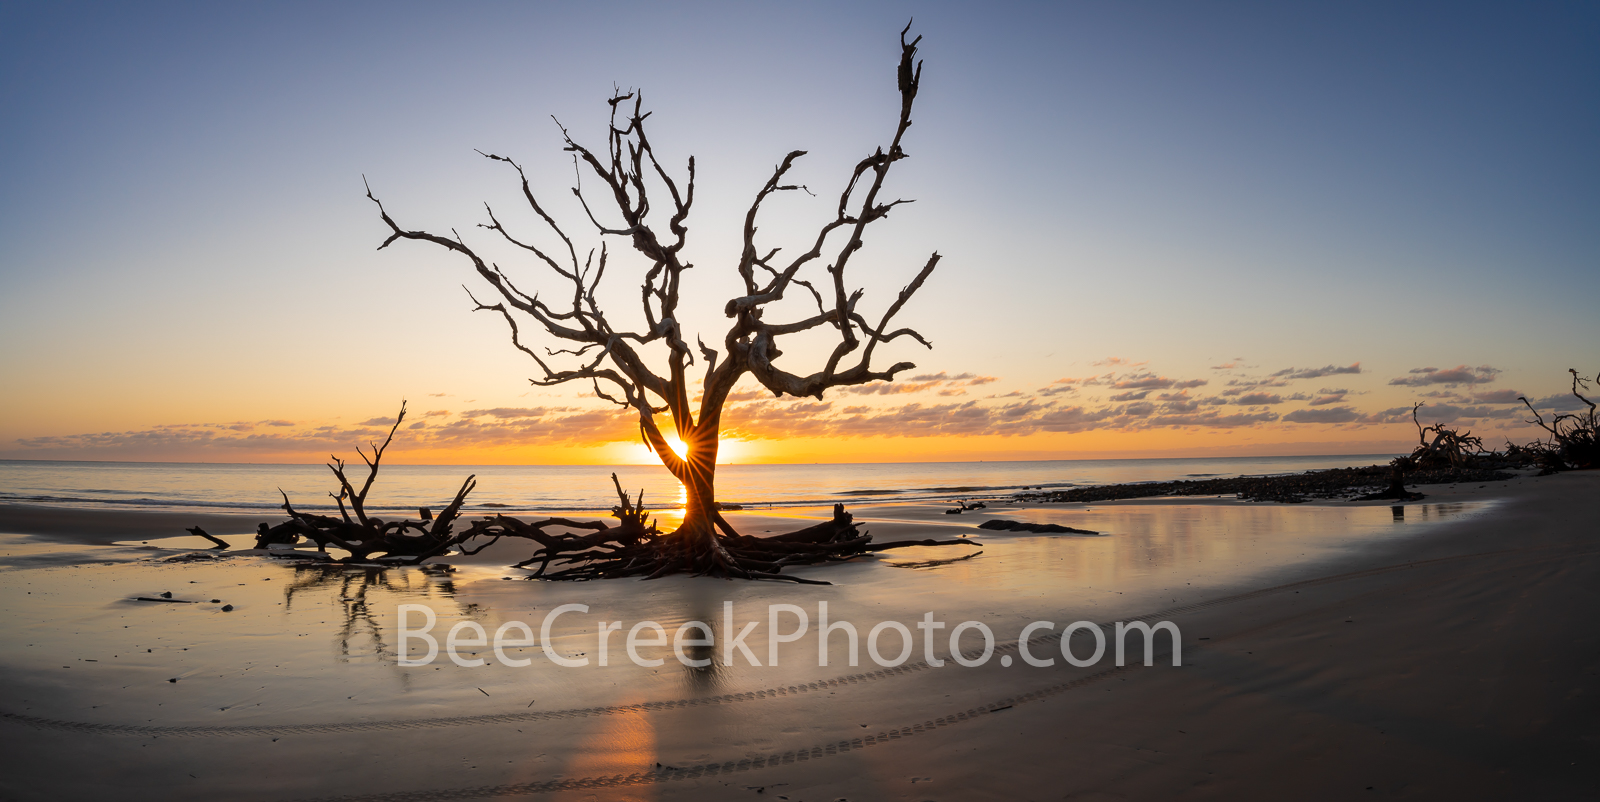 driftwood beach, tree, jekyll island, georgia, boneyard beach, stumps,  coast, alantic, ocean, coastline, beach, sunrise, driftwood, rays, Golden Isles, barrier islands, pano, panorama, , photo